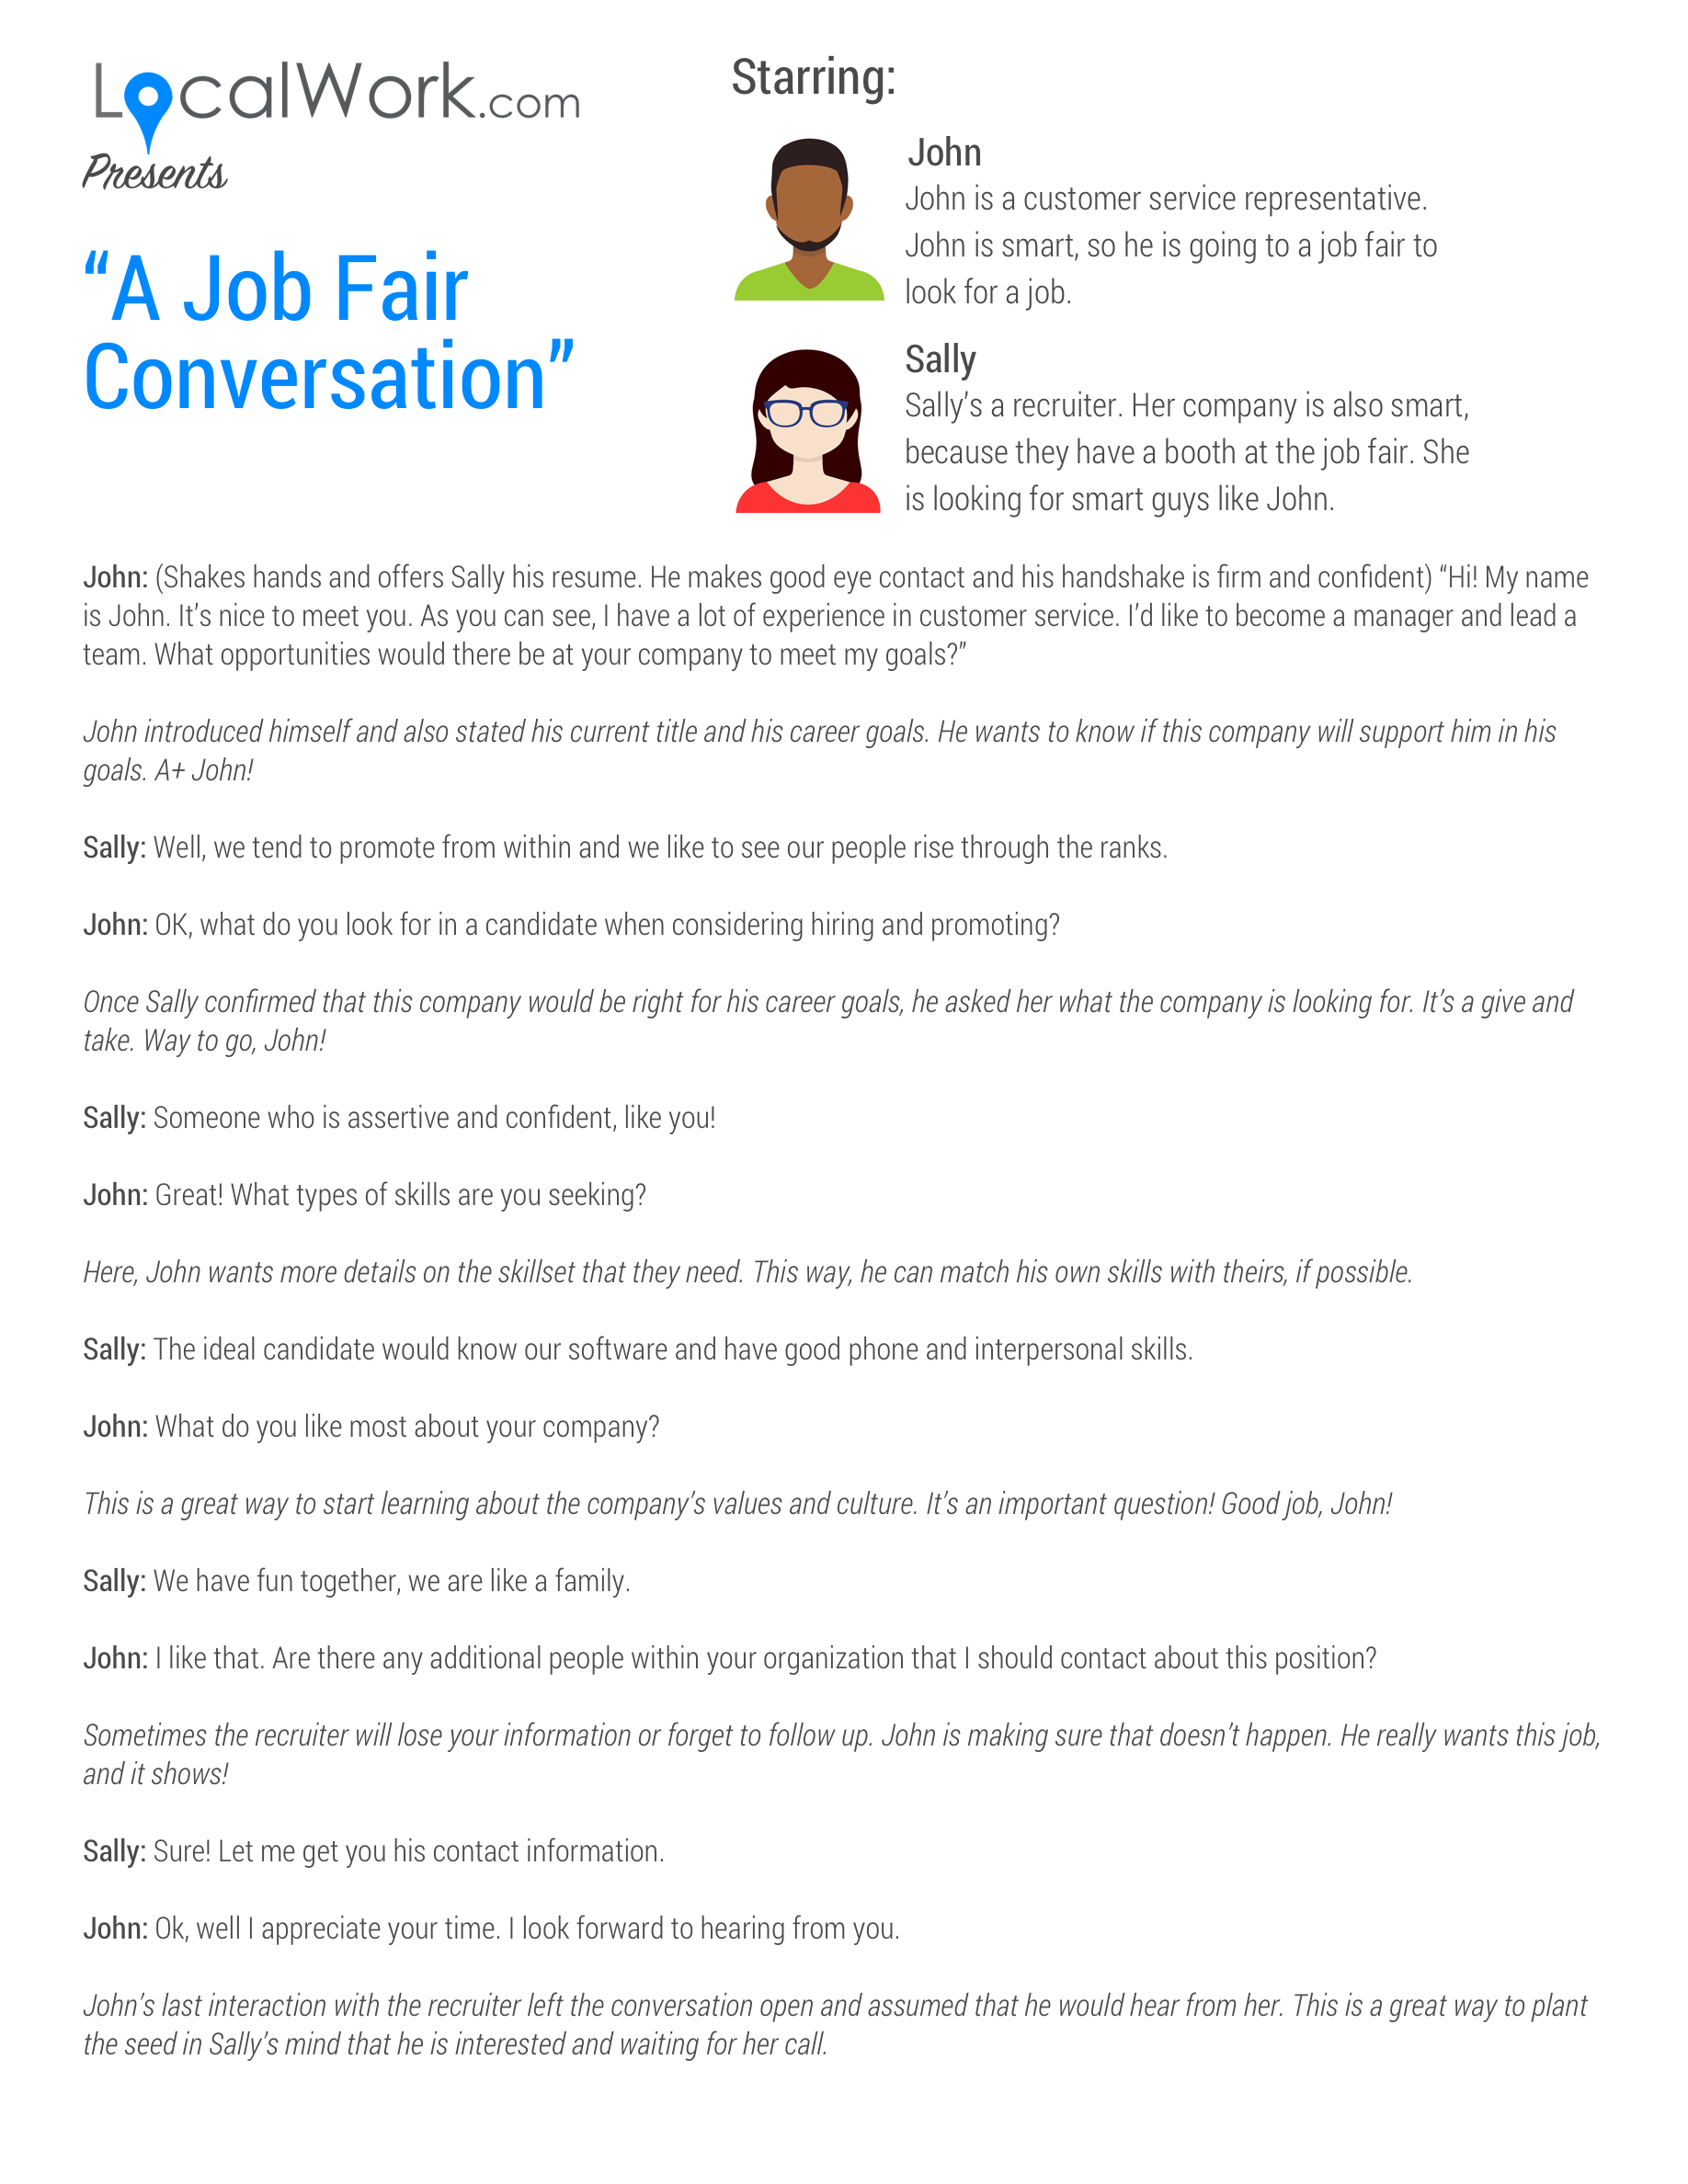 What to talk about at a job fair